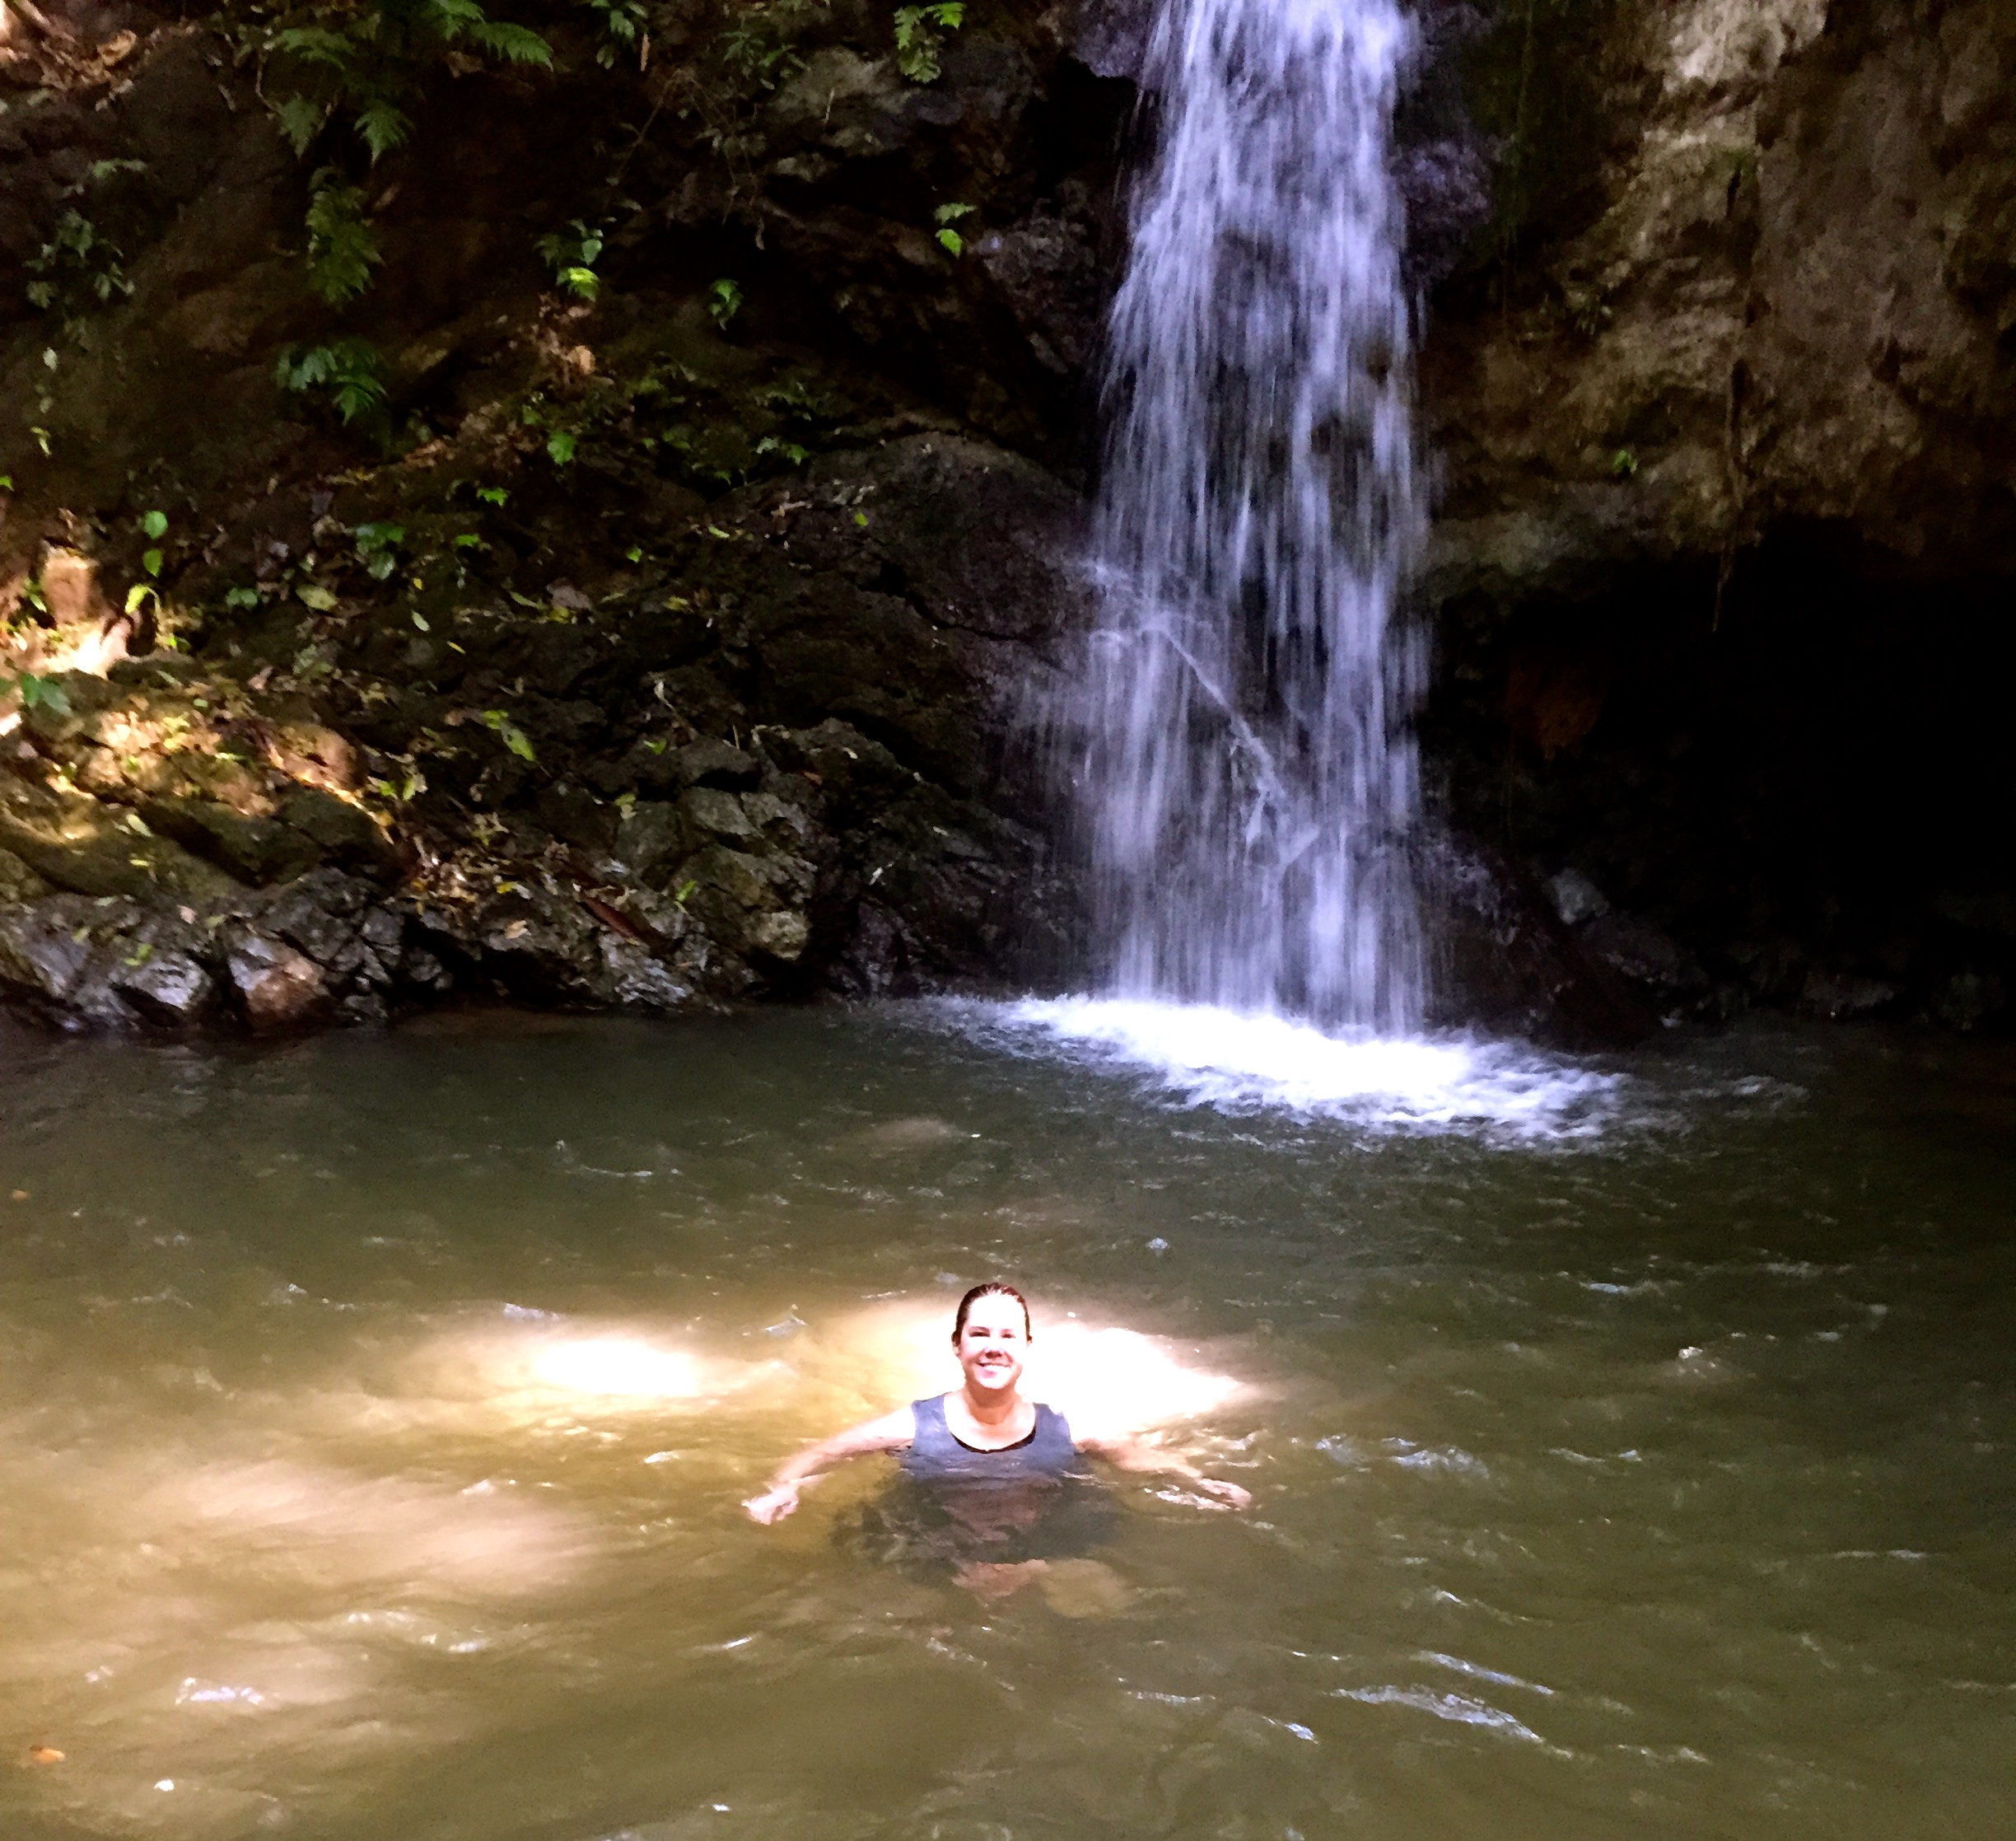 Getting Half Naked In Costa Rica - Not Your Average Runner